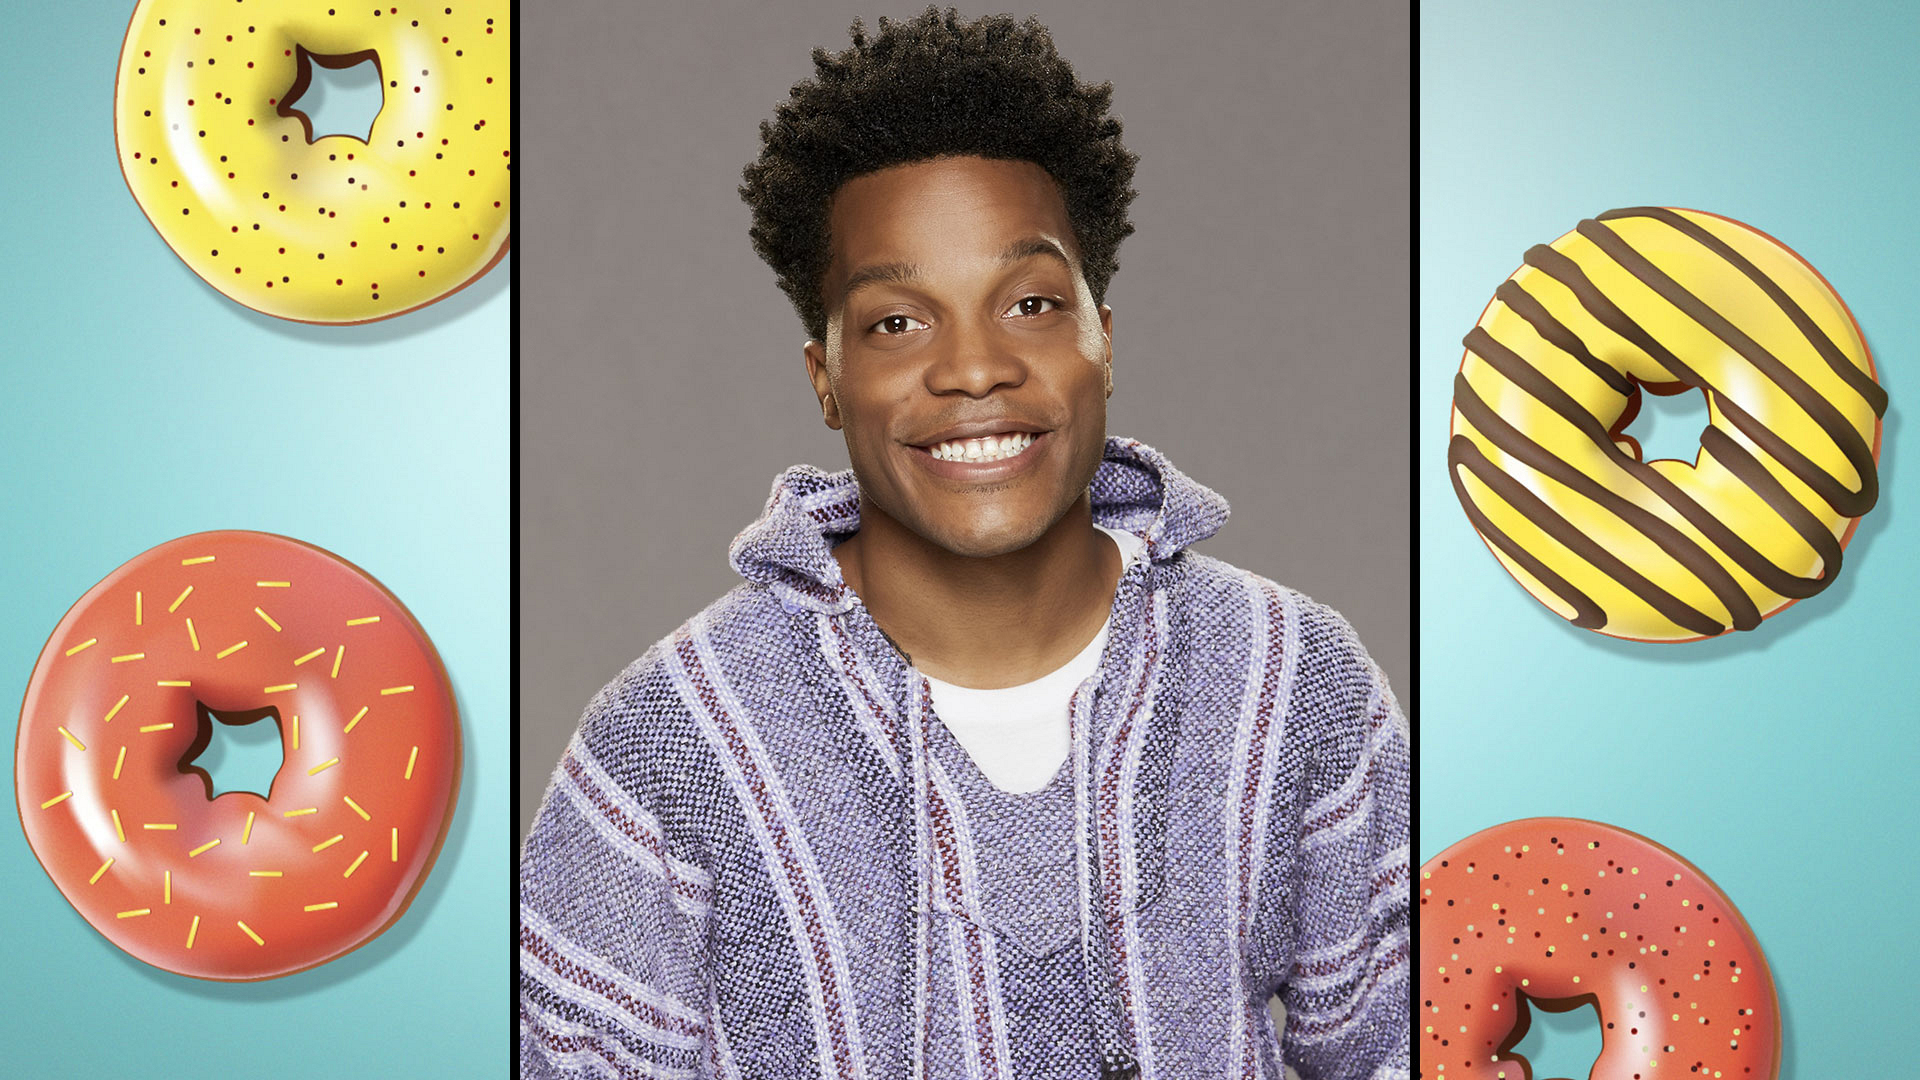 Jermaine Fowler, who plays Franco